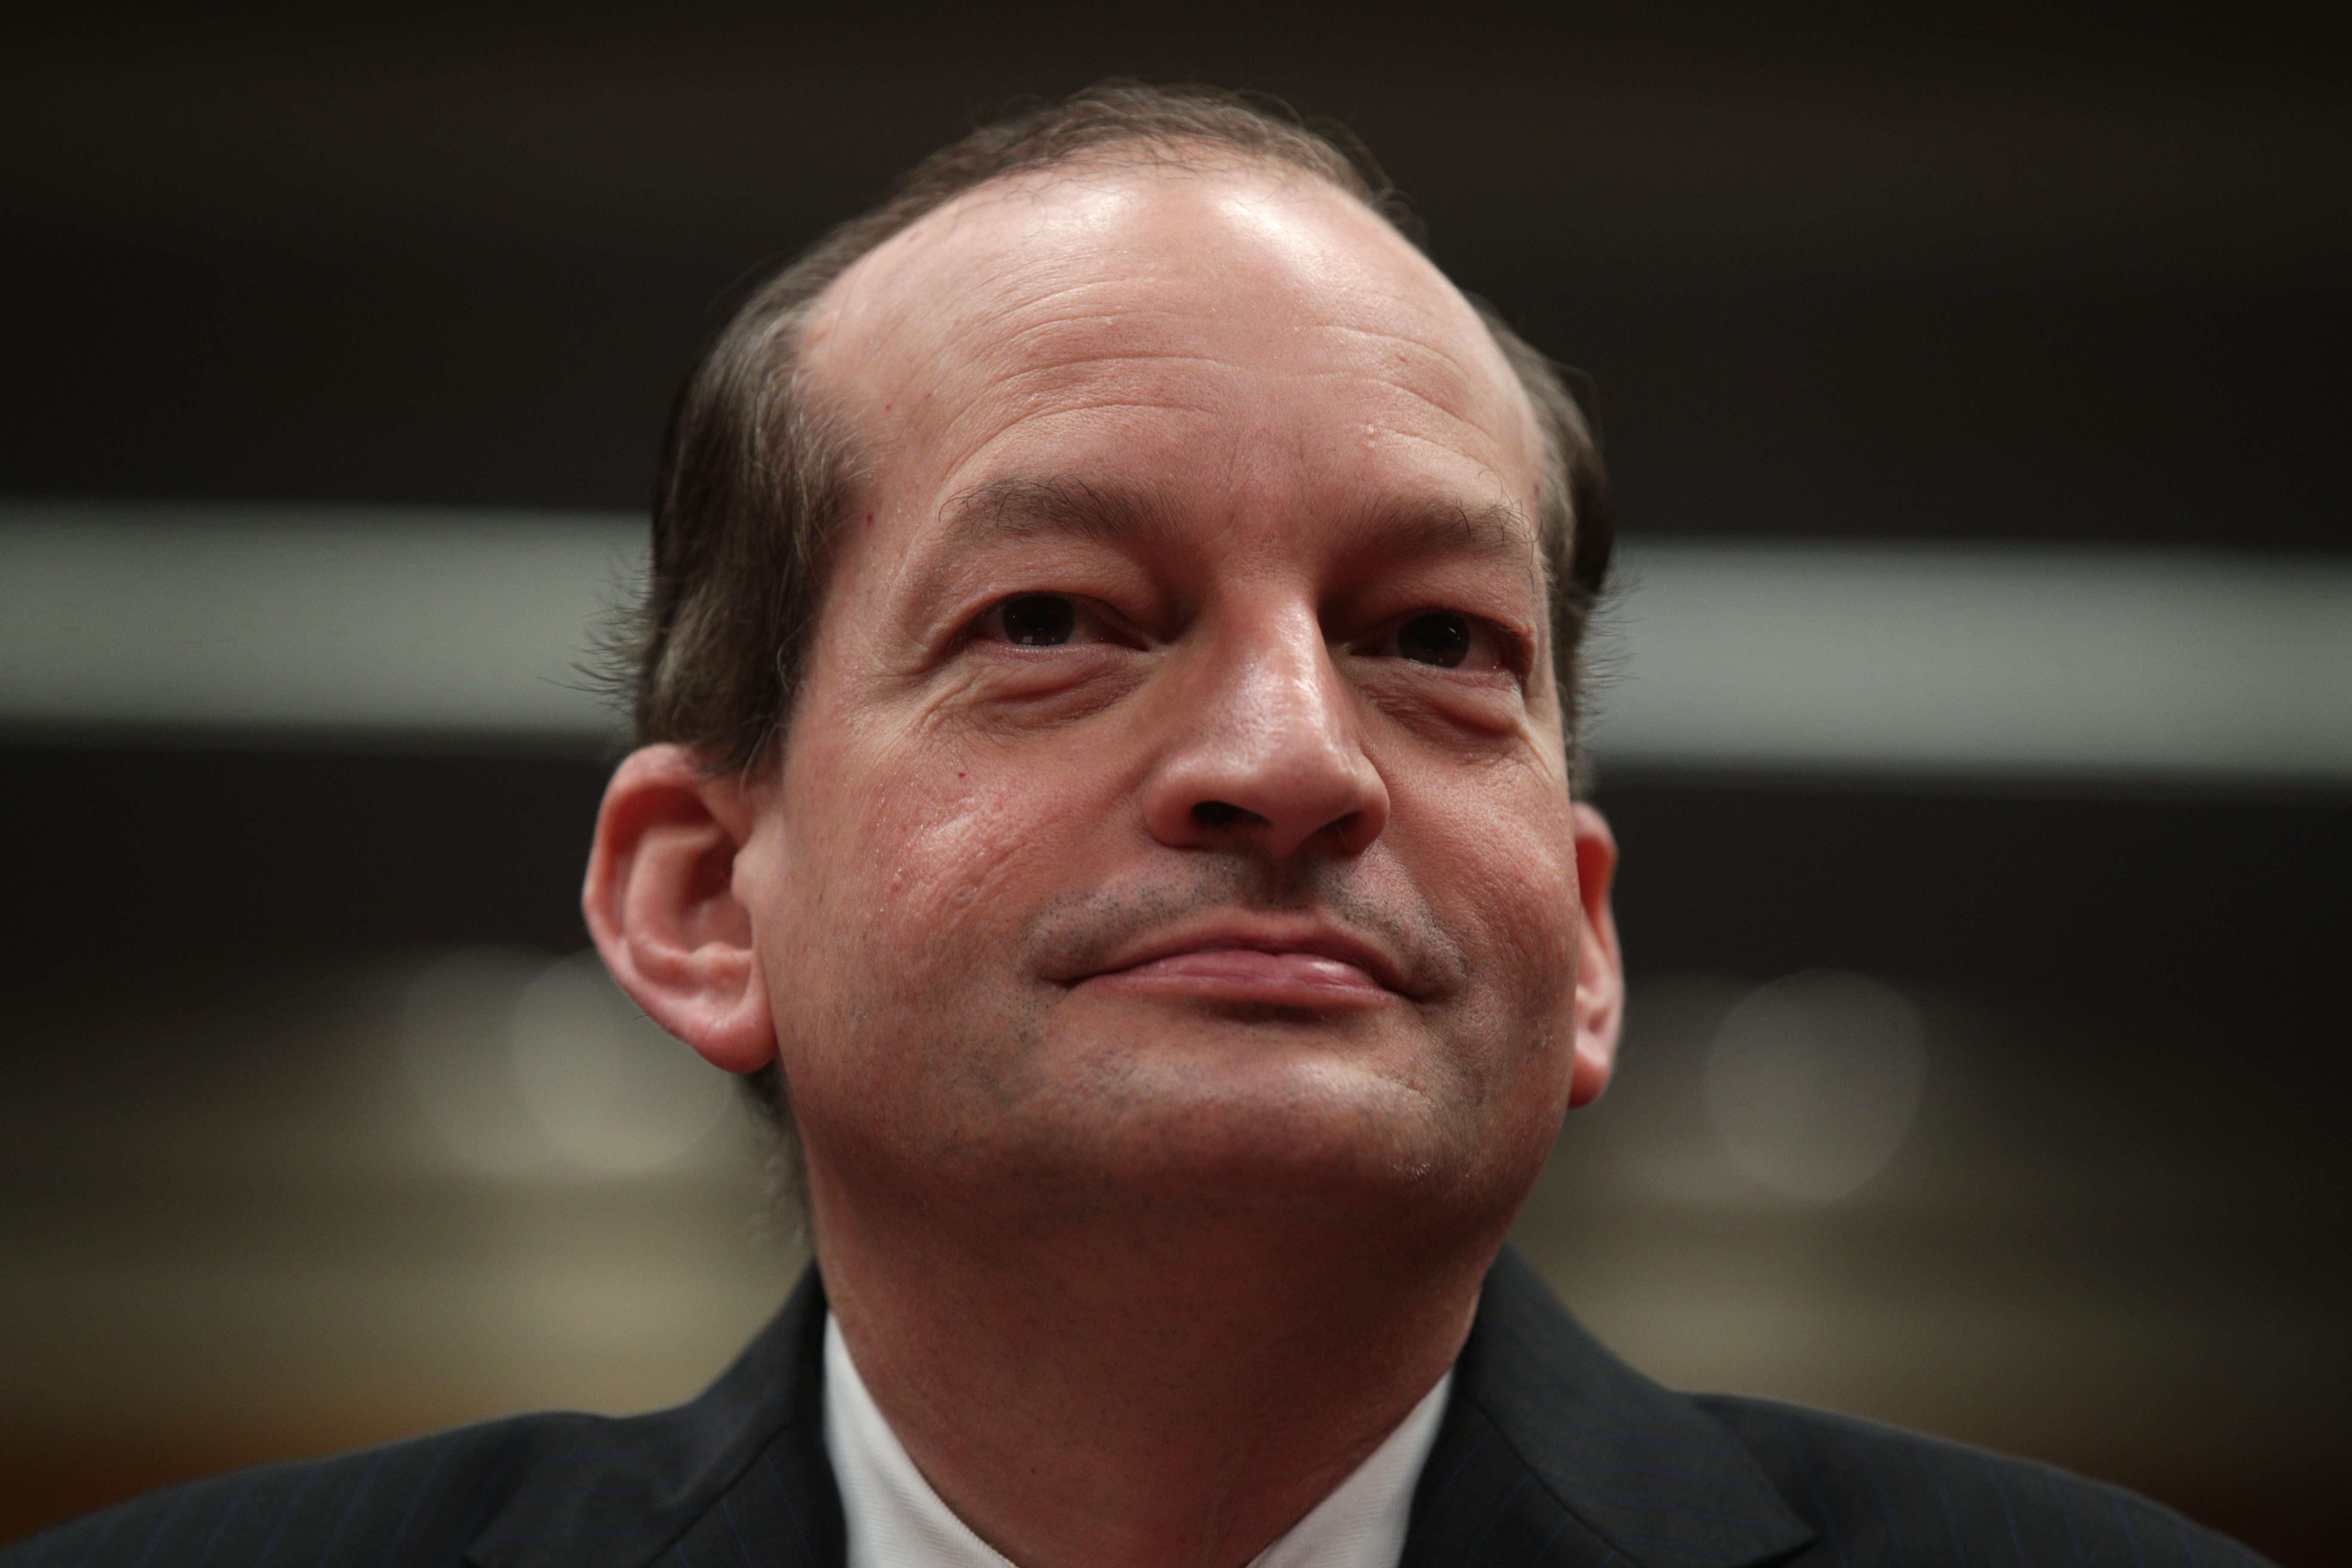 U.S. Labor Secretary Alexander Acosta testifies during a hearing before the Labor, Health and Human Services, Education and Related Agencies Subcommittee of Senate Appropriations Committee May 2, 2019 on Capitol Hill in Washington, D.C. (Photo: Alex Wong/Getty Images)